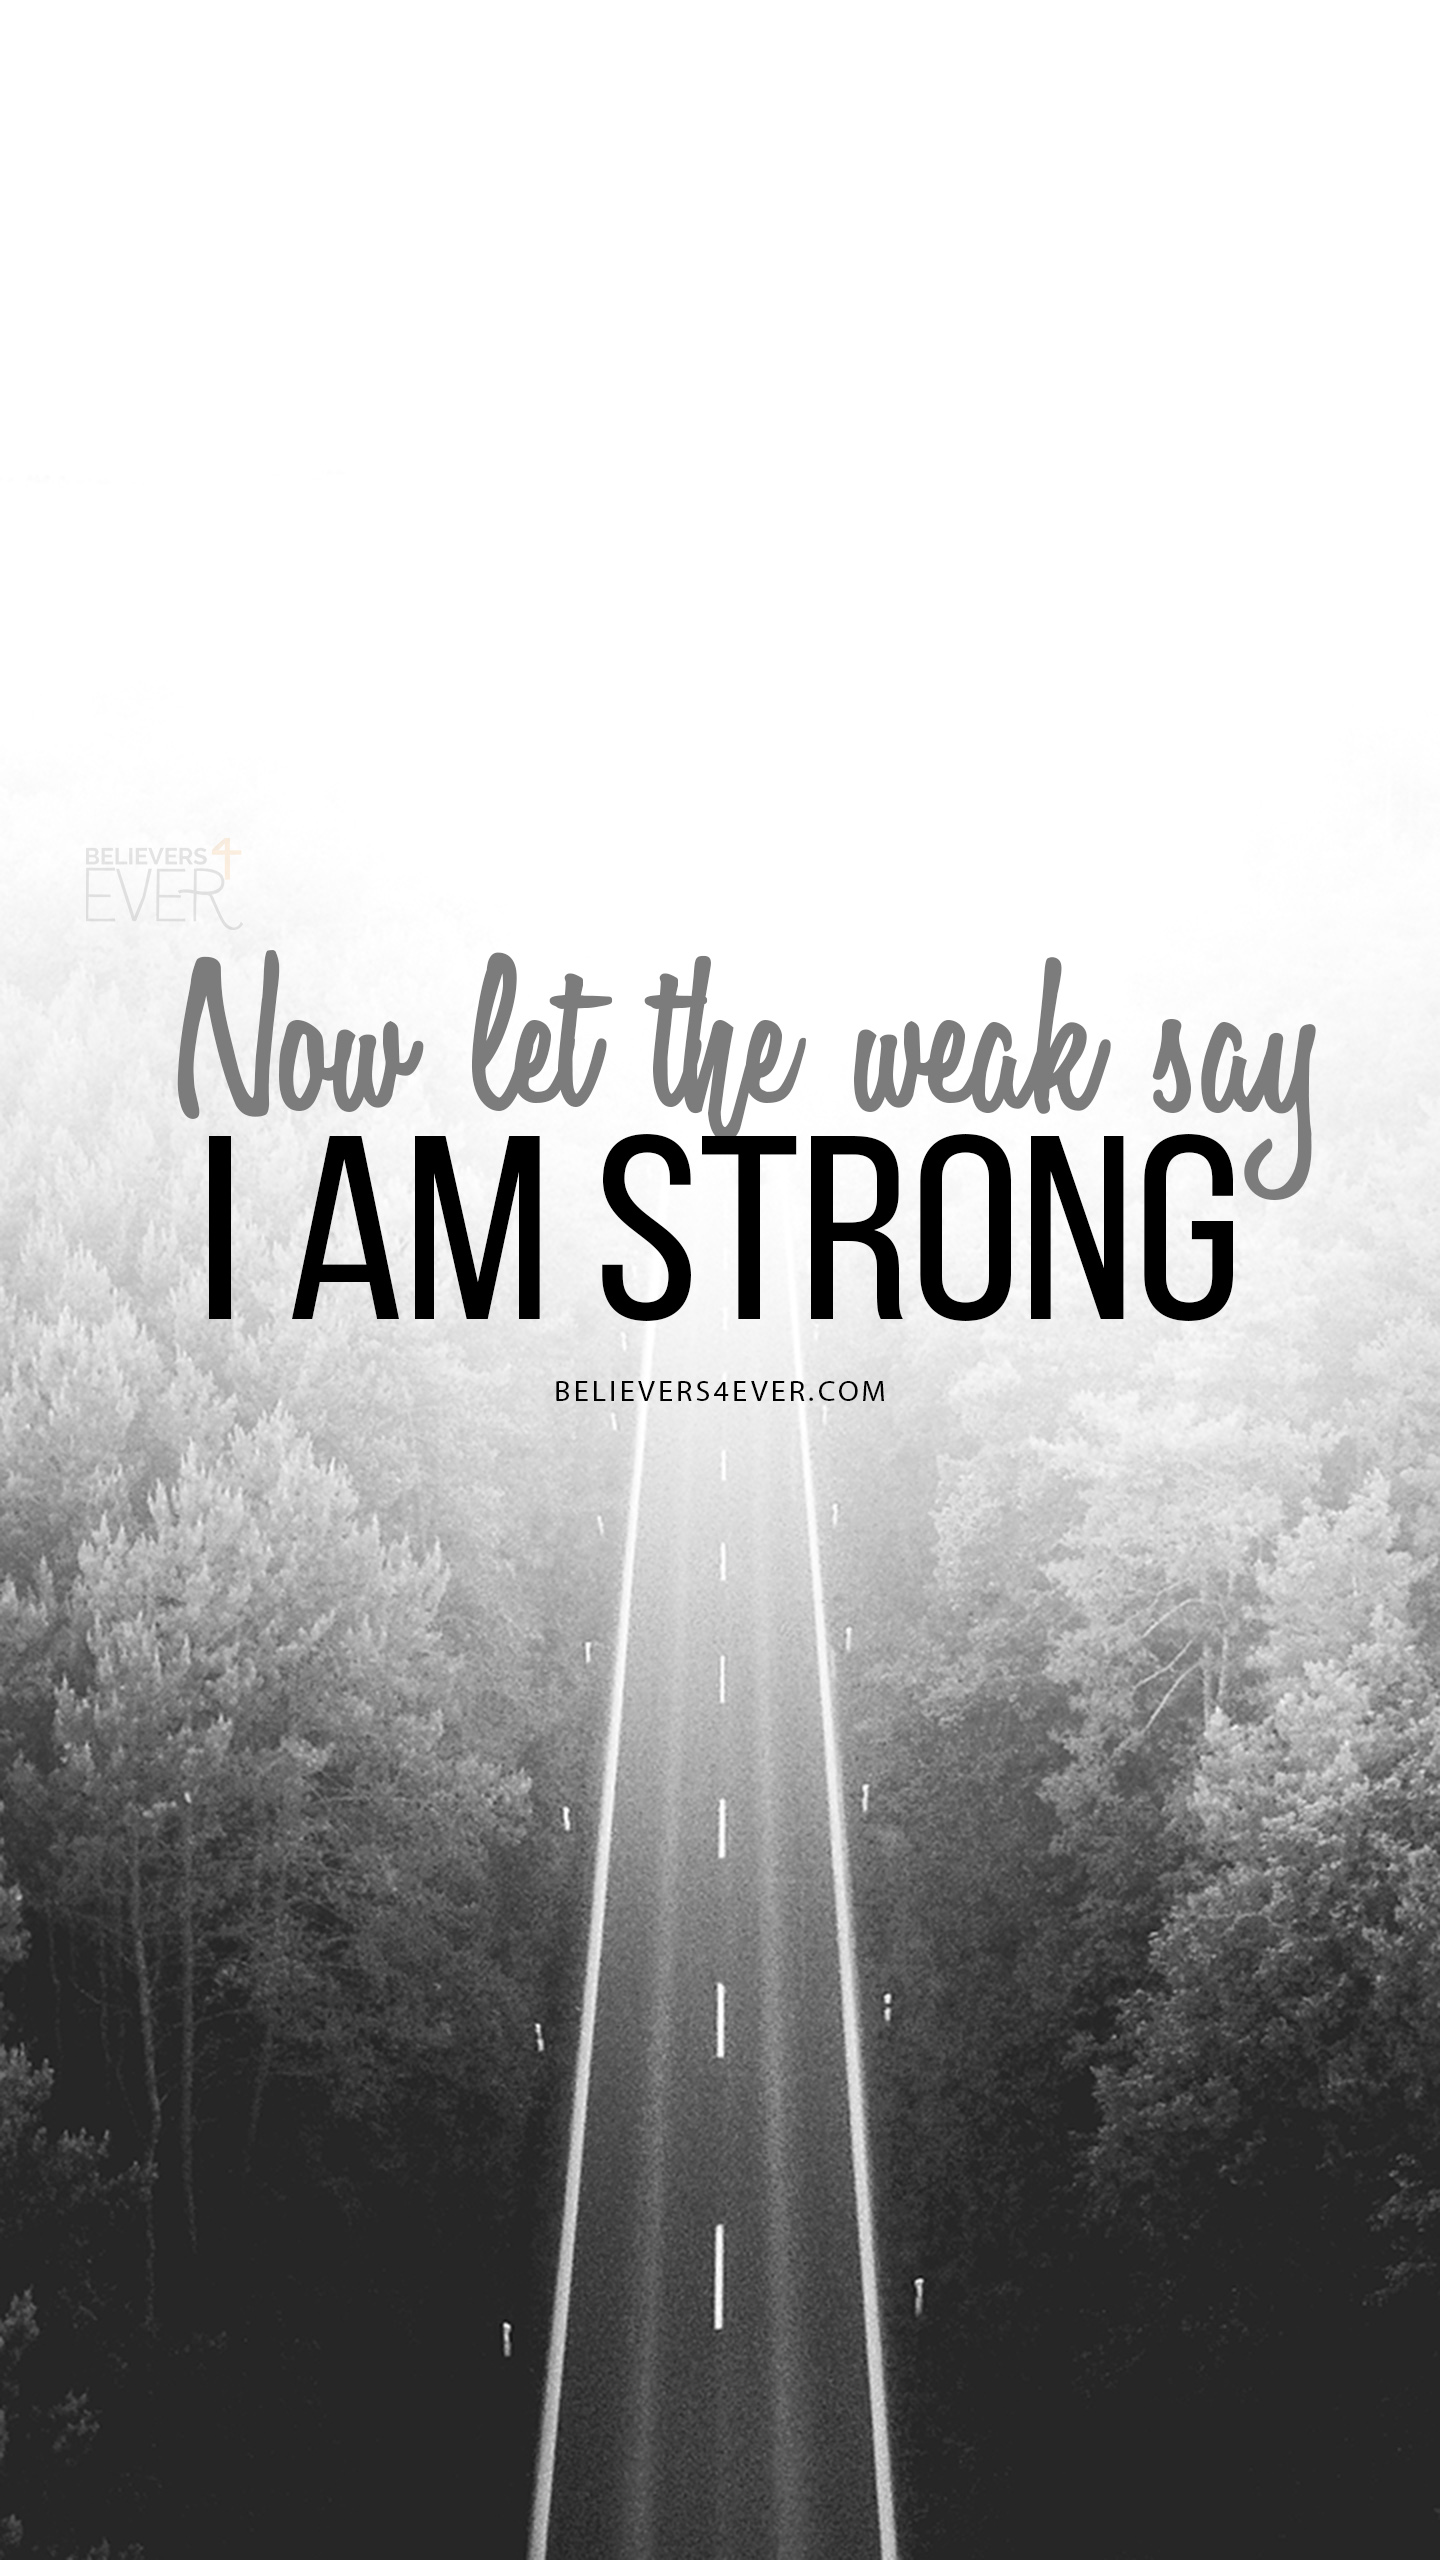 Now Let the weak say I am strong.